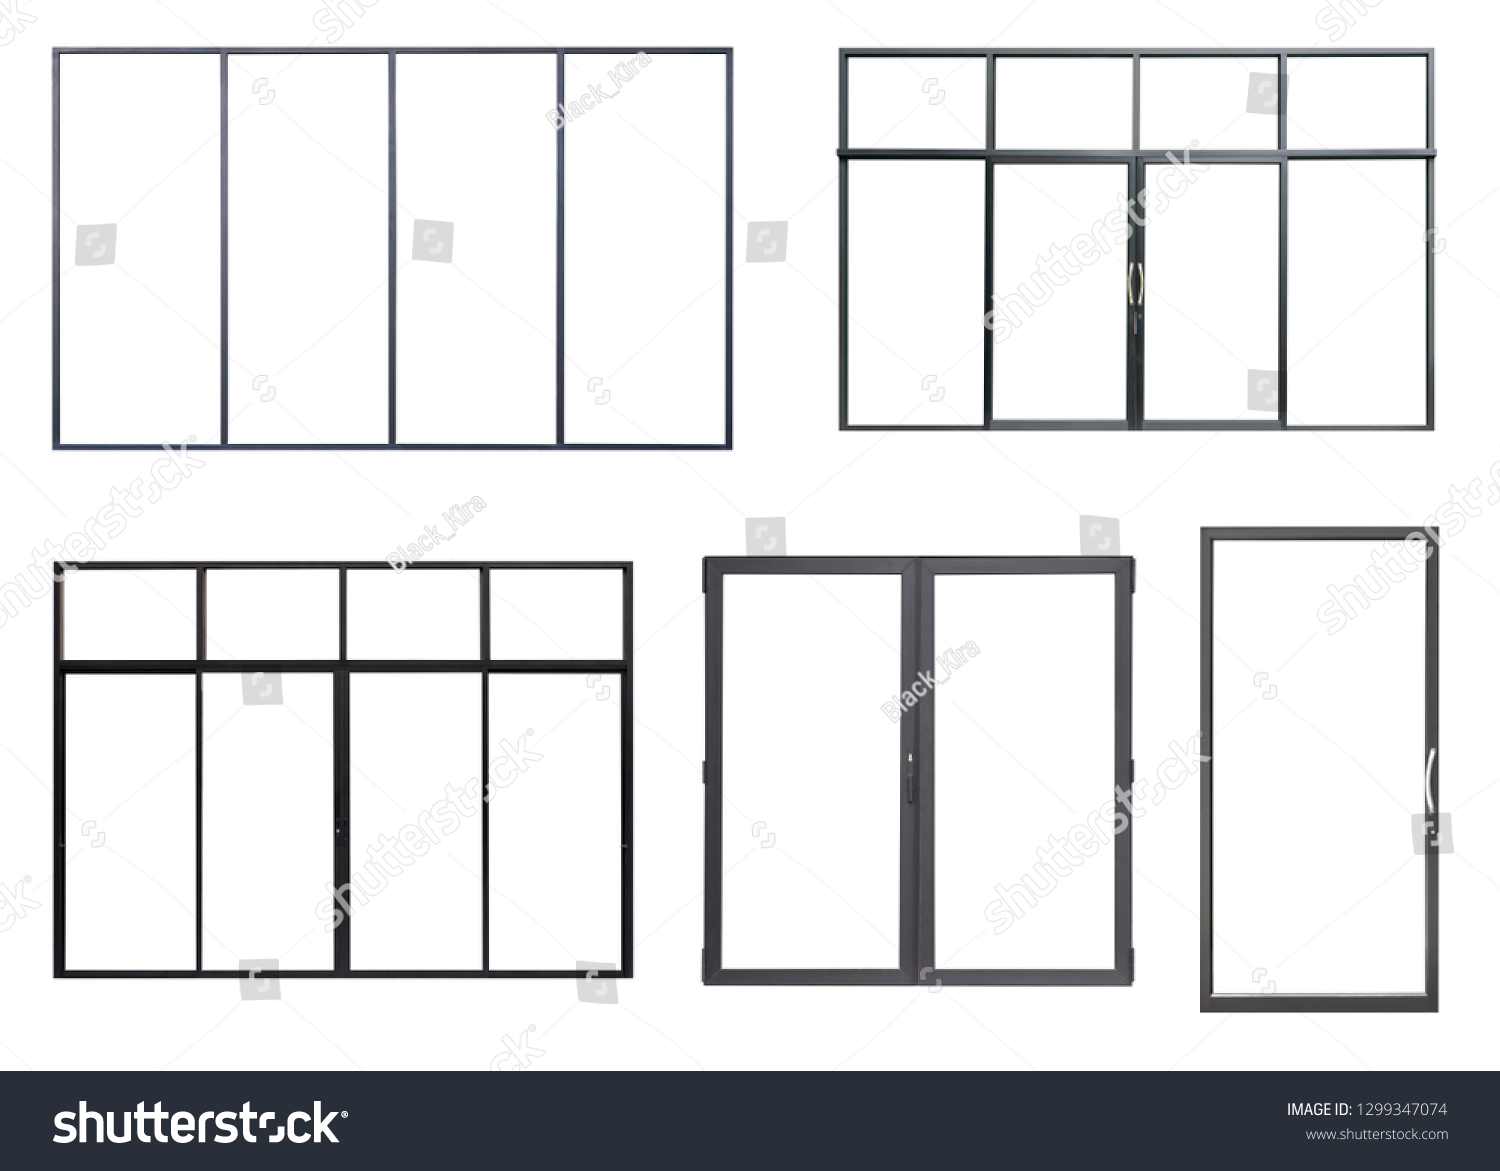 03197a39e411 Real Black Modern Windows Set Isolated Stock Photo (Edit Now ...